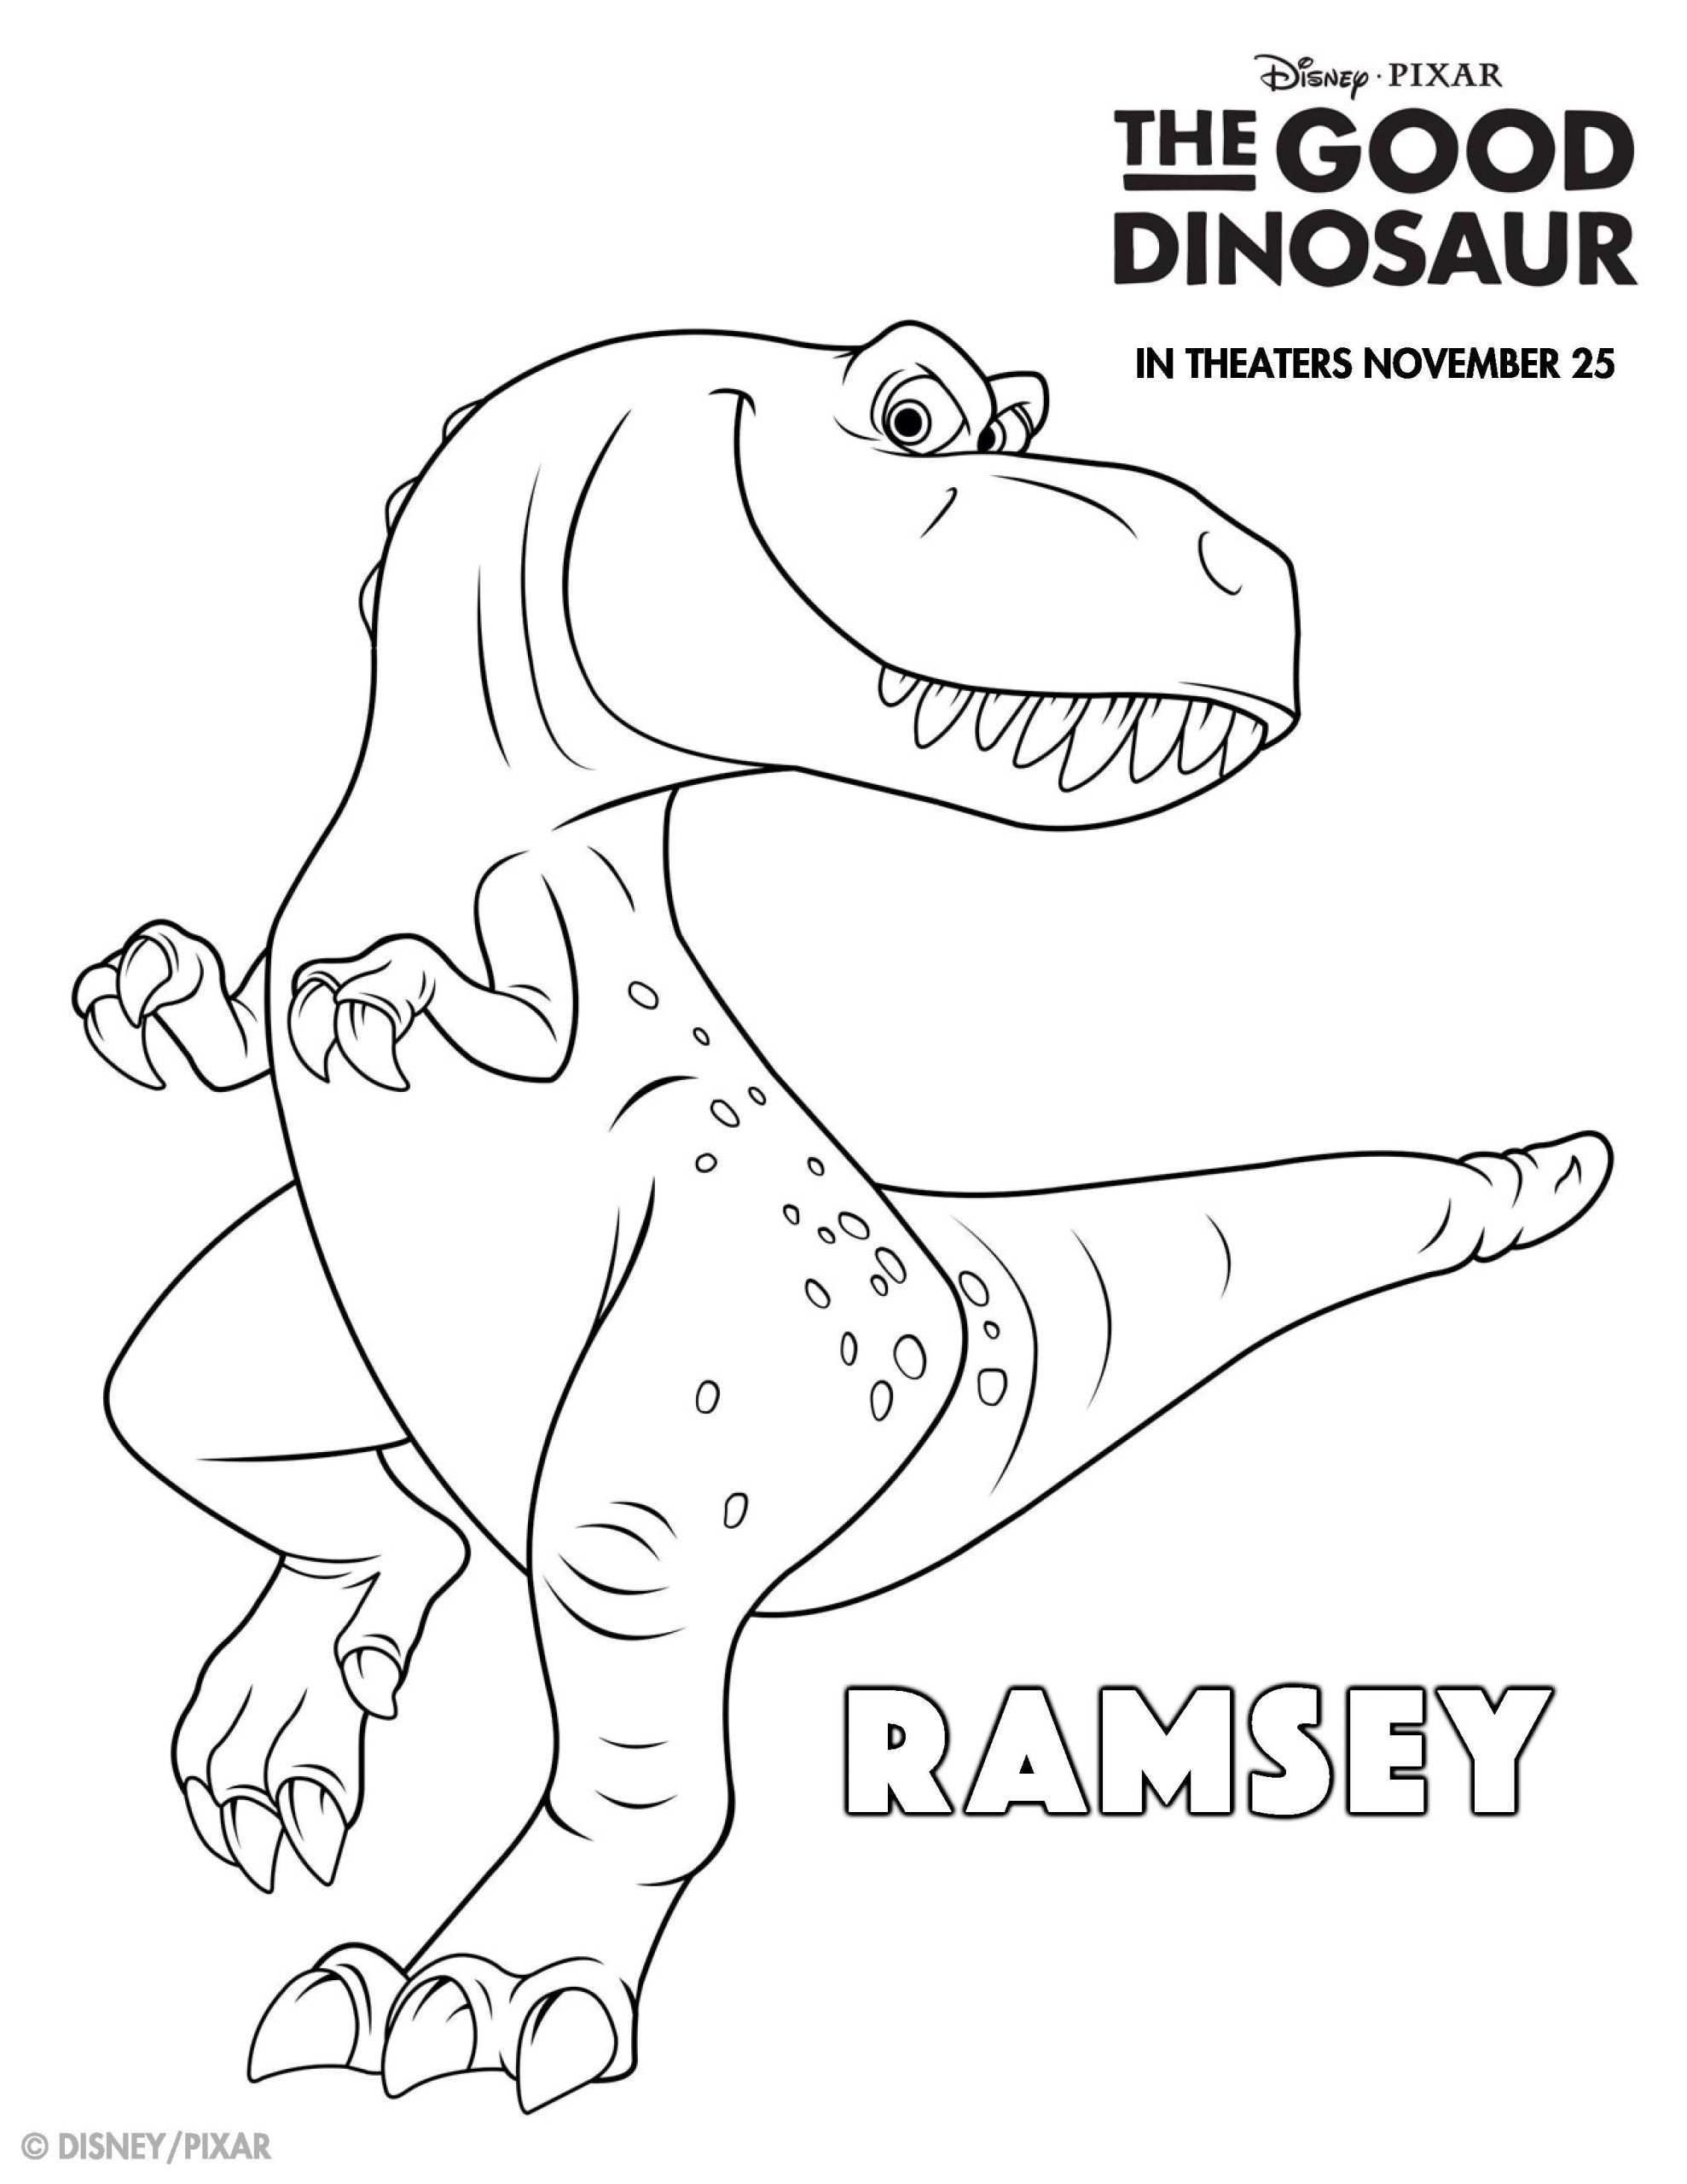 The Good Dinosaur Coloring Pages The Good Dinosaur Coloring Pages At Getdrawings In 2020 Dinosaur Coloring Pages Unicorn Coloring Pages Dinosaur Coloring